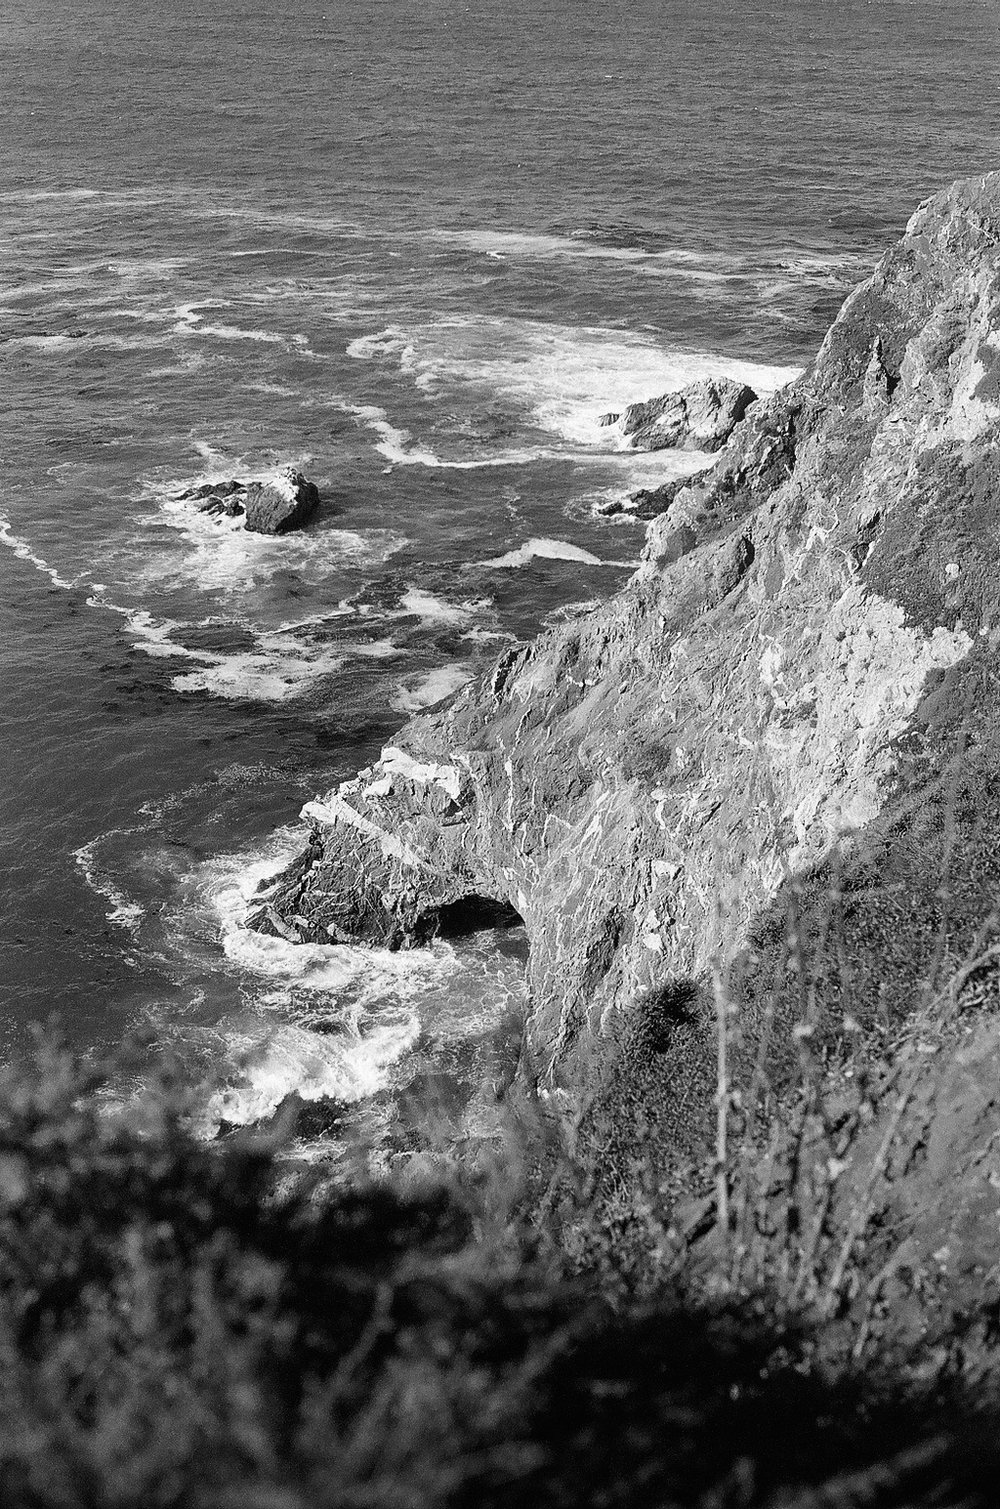 Everyone that goes to Julia Pfeiffer Burns State park gets shots of the waterfall. I decided to climb down to the beach and get a different perspective. My favorite shot came from the backside of the sketchy climb down, an image most have probably never seen.